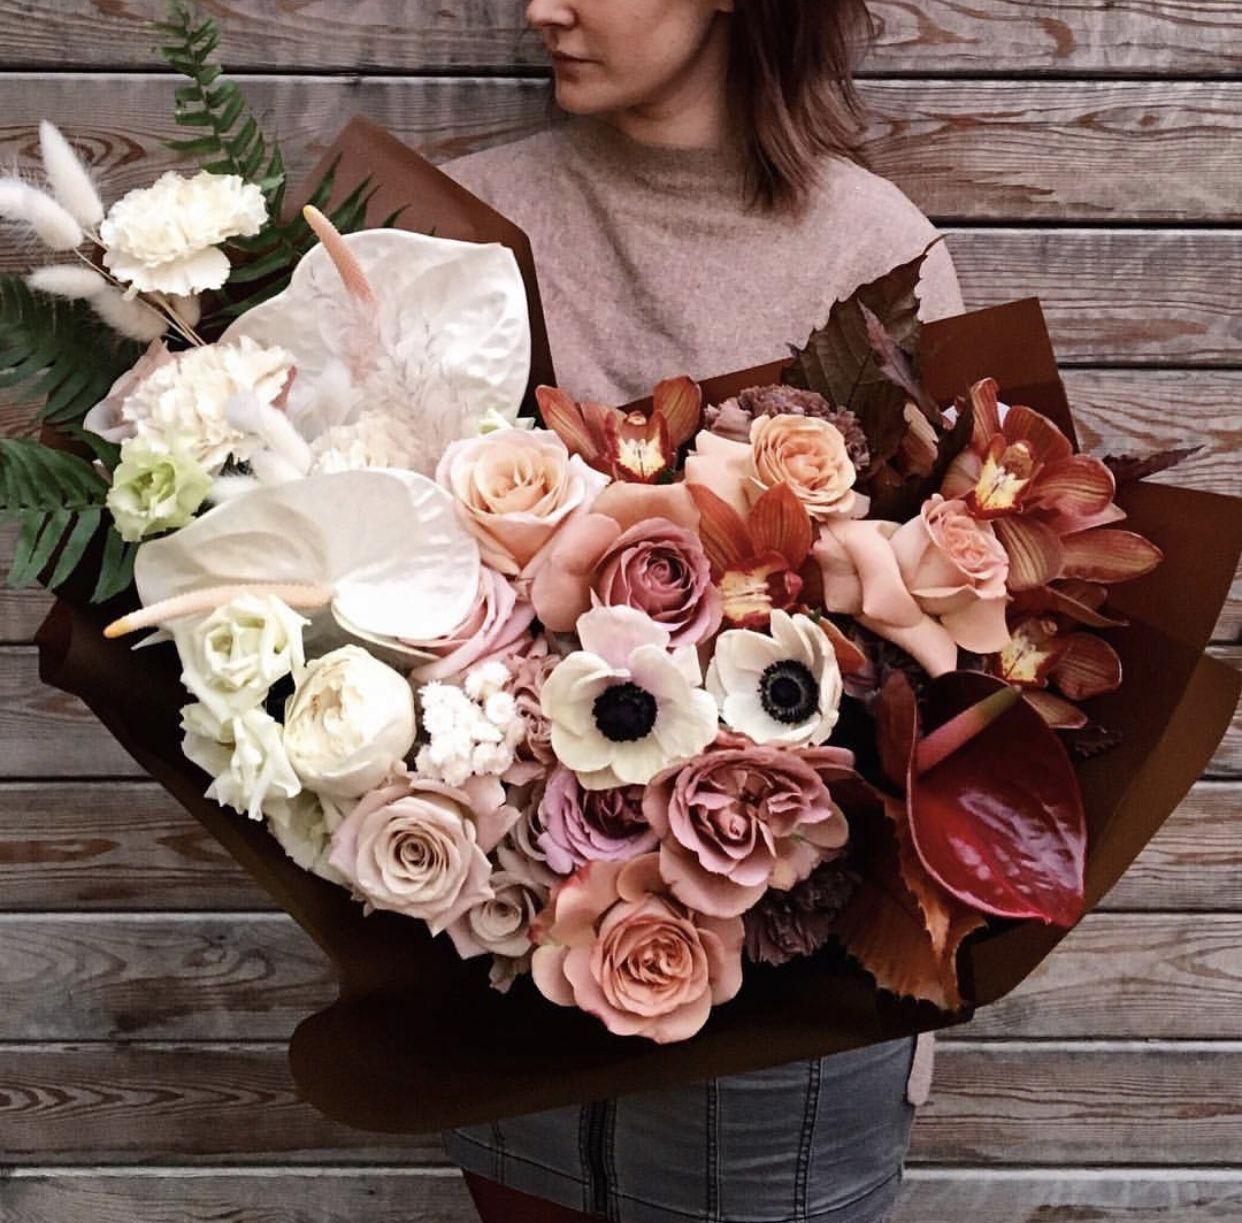 Pin by Rey An Querido on Bouquets Farmgirl flowers